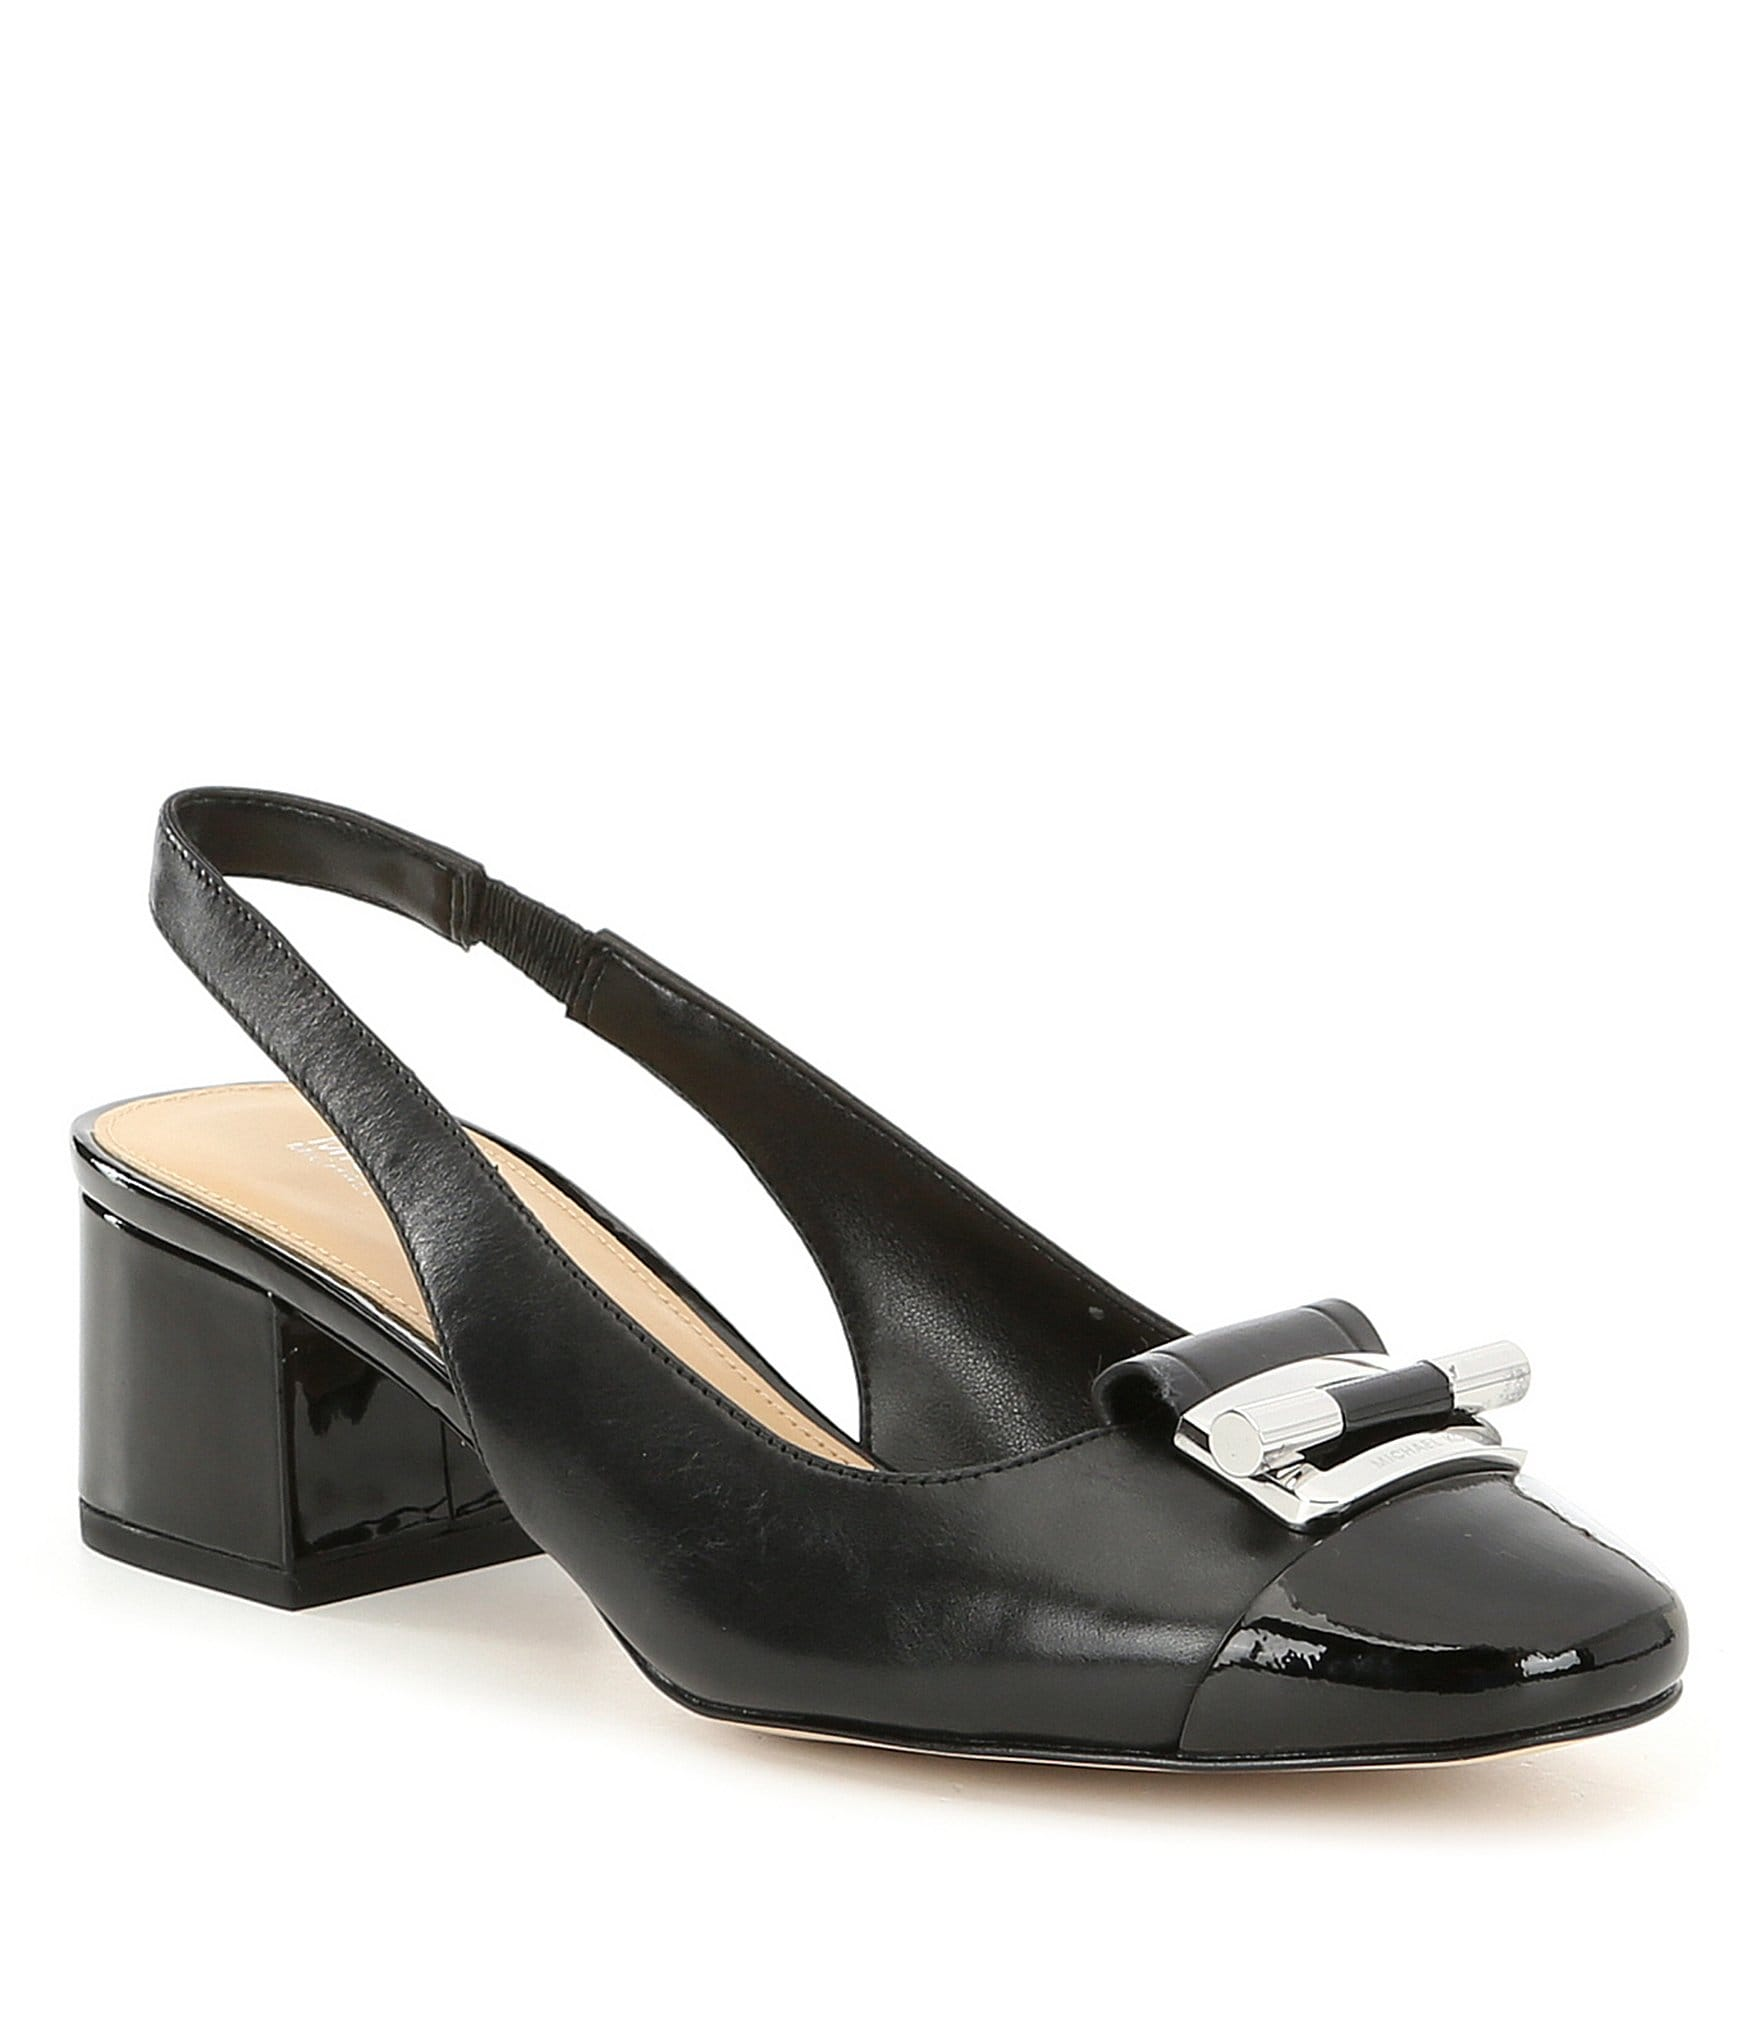 cf20231e049c Buy michael kors black jelly sandals   OFF63% Discounted